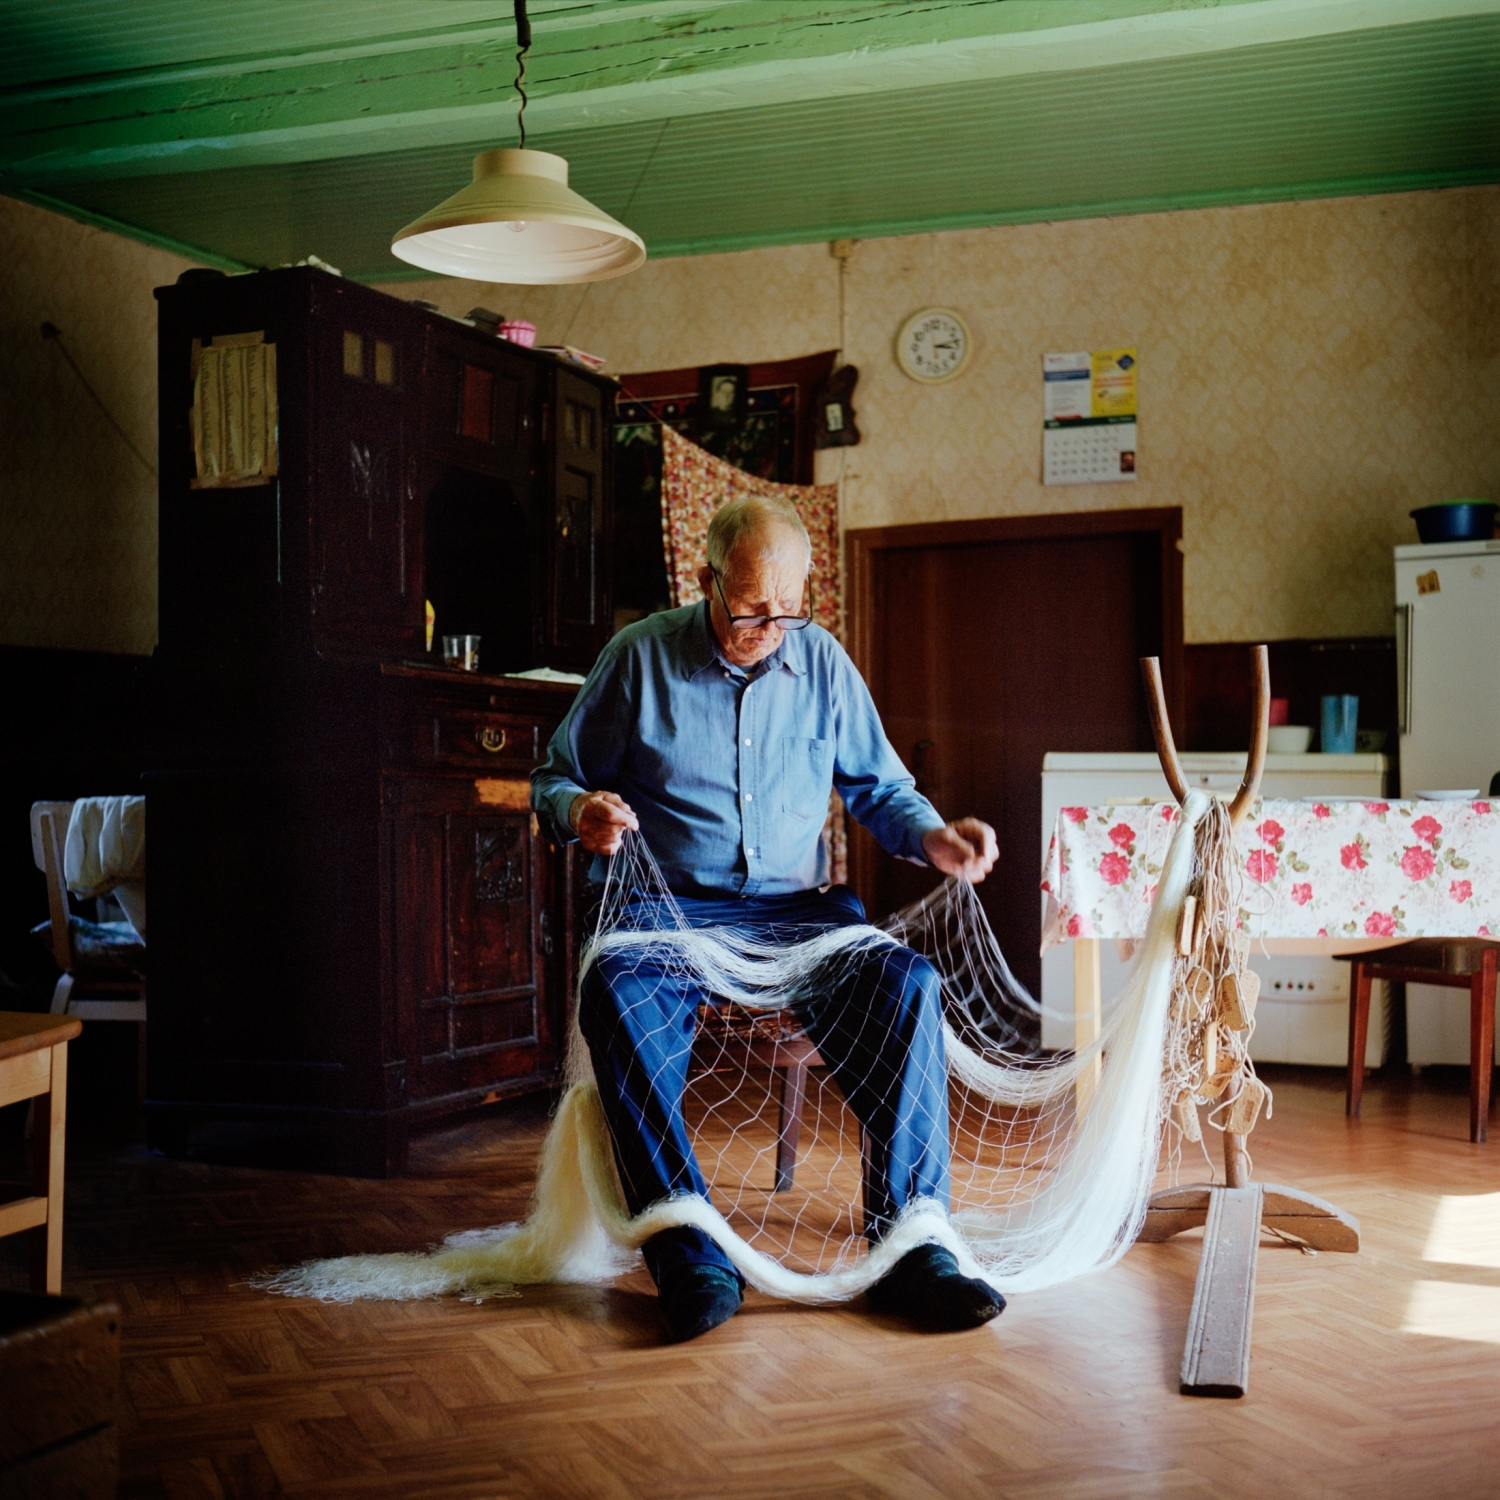 Mihkel Lilles went fishing with his father for the first time when he was 6 years old. Today, he is 84 and still prepares his boat, mends his ofl fishing nets even if he hasn't gone out to sea for the past six years. July 2014.